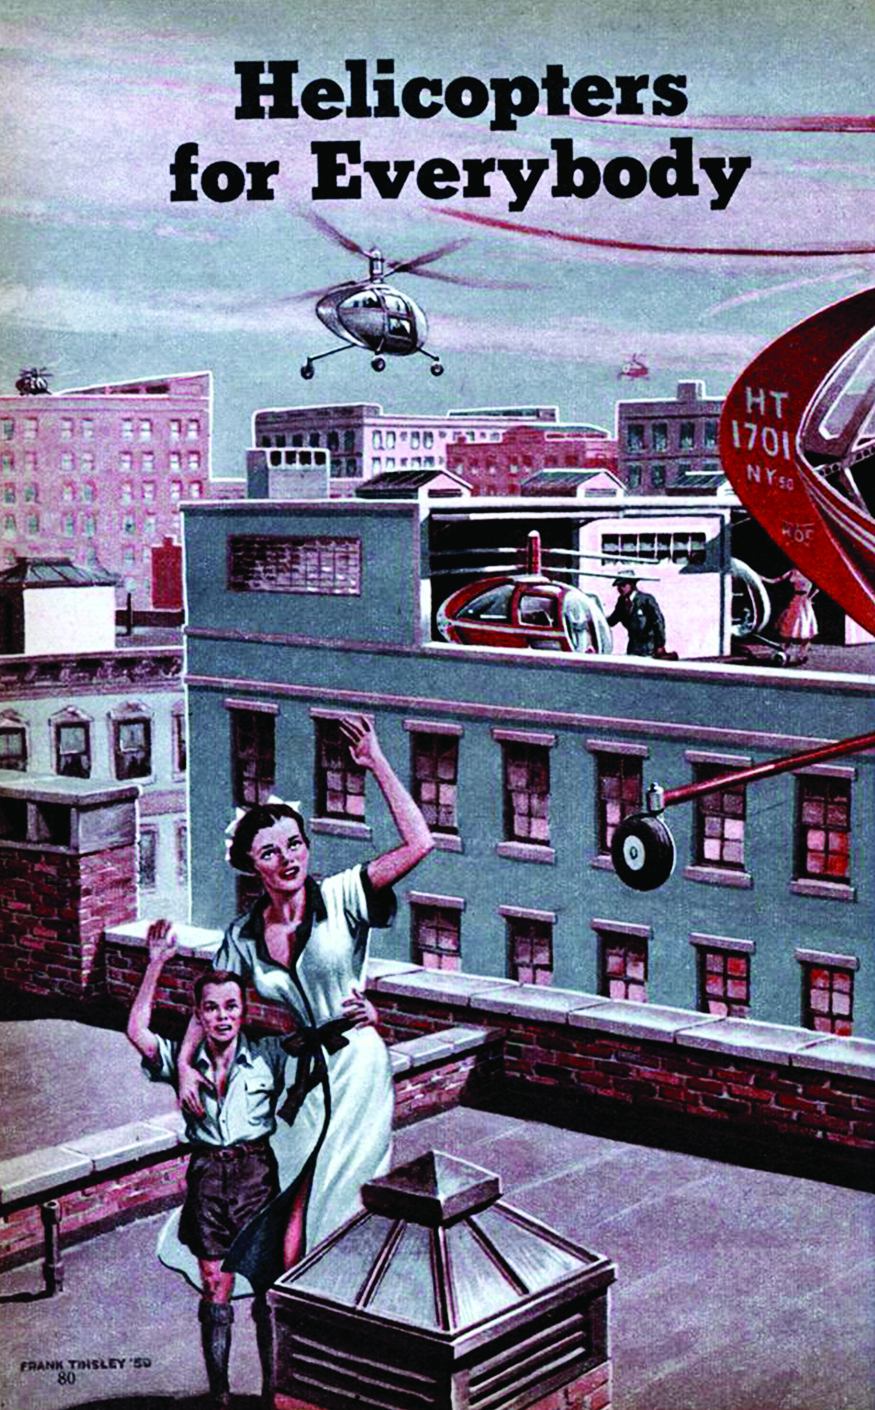 'Helicopters for everybody', Frank Tinsley, 1951